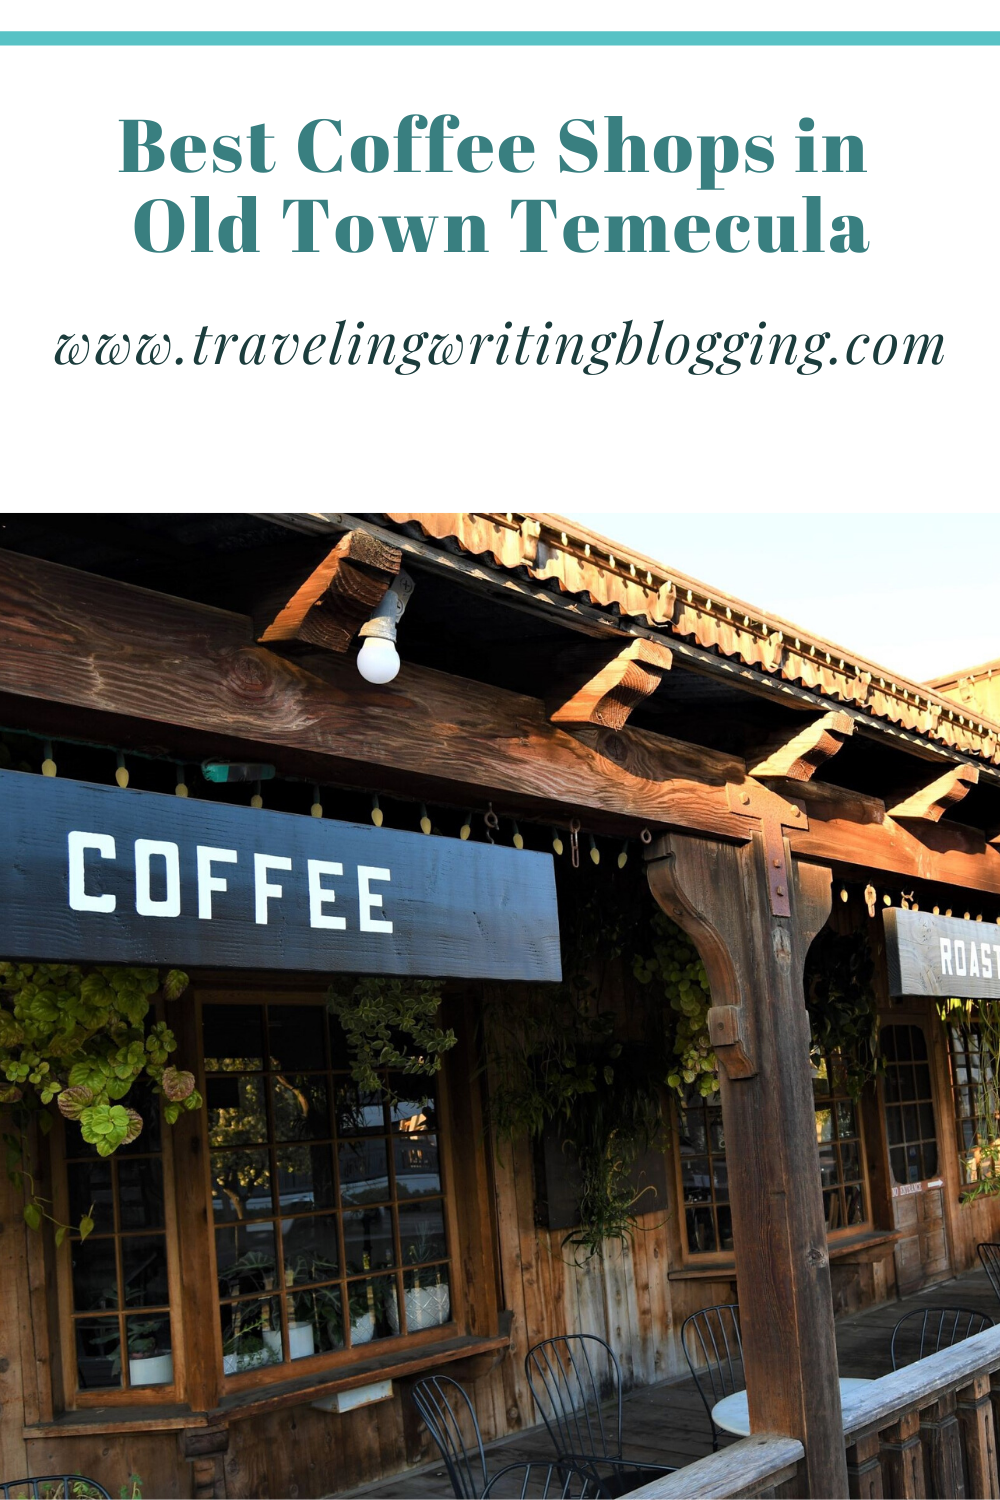 Best Coffee Shops in Old Town Temecula in 2020 Best